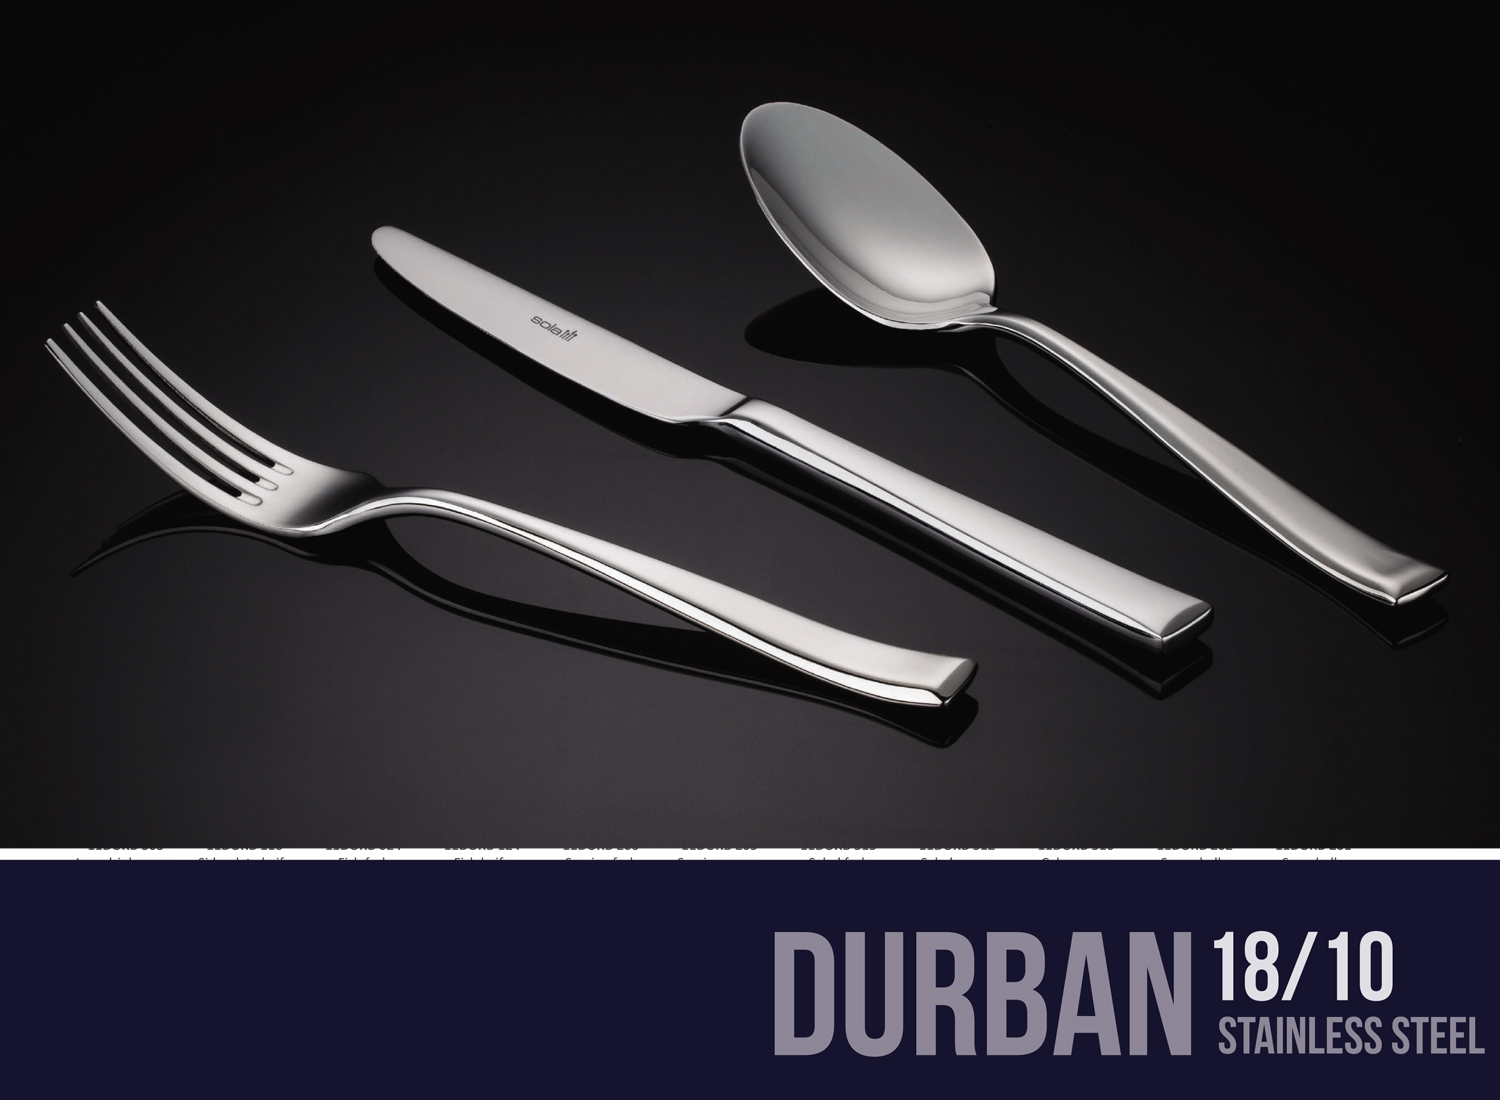 Durban Stainless Steel